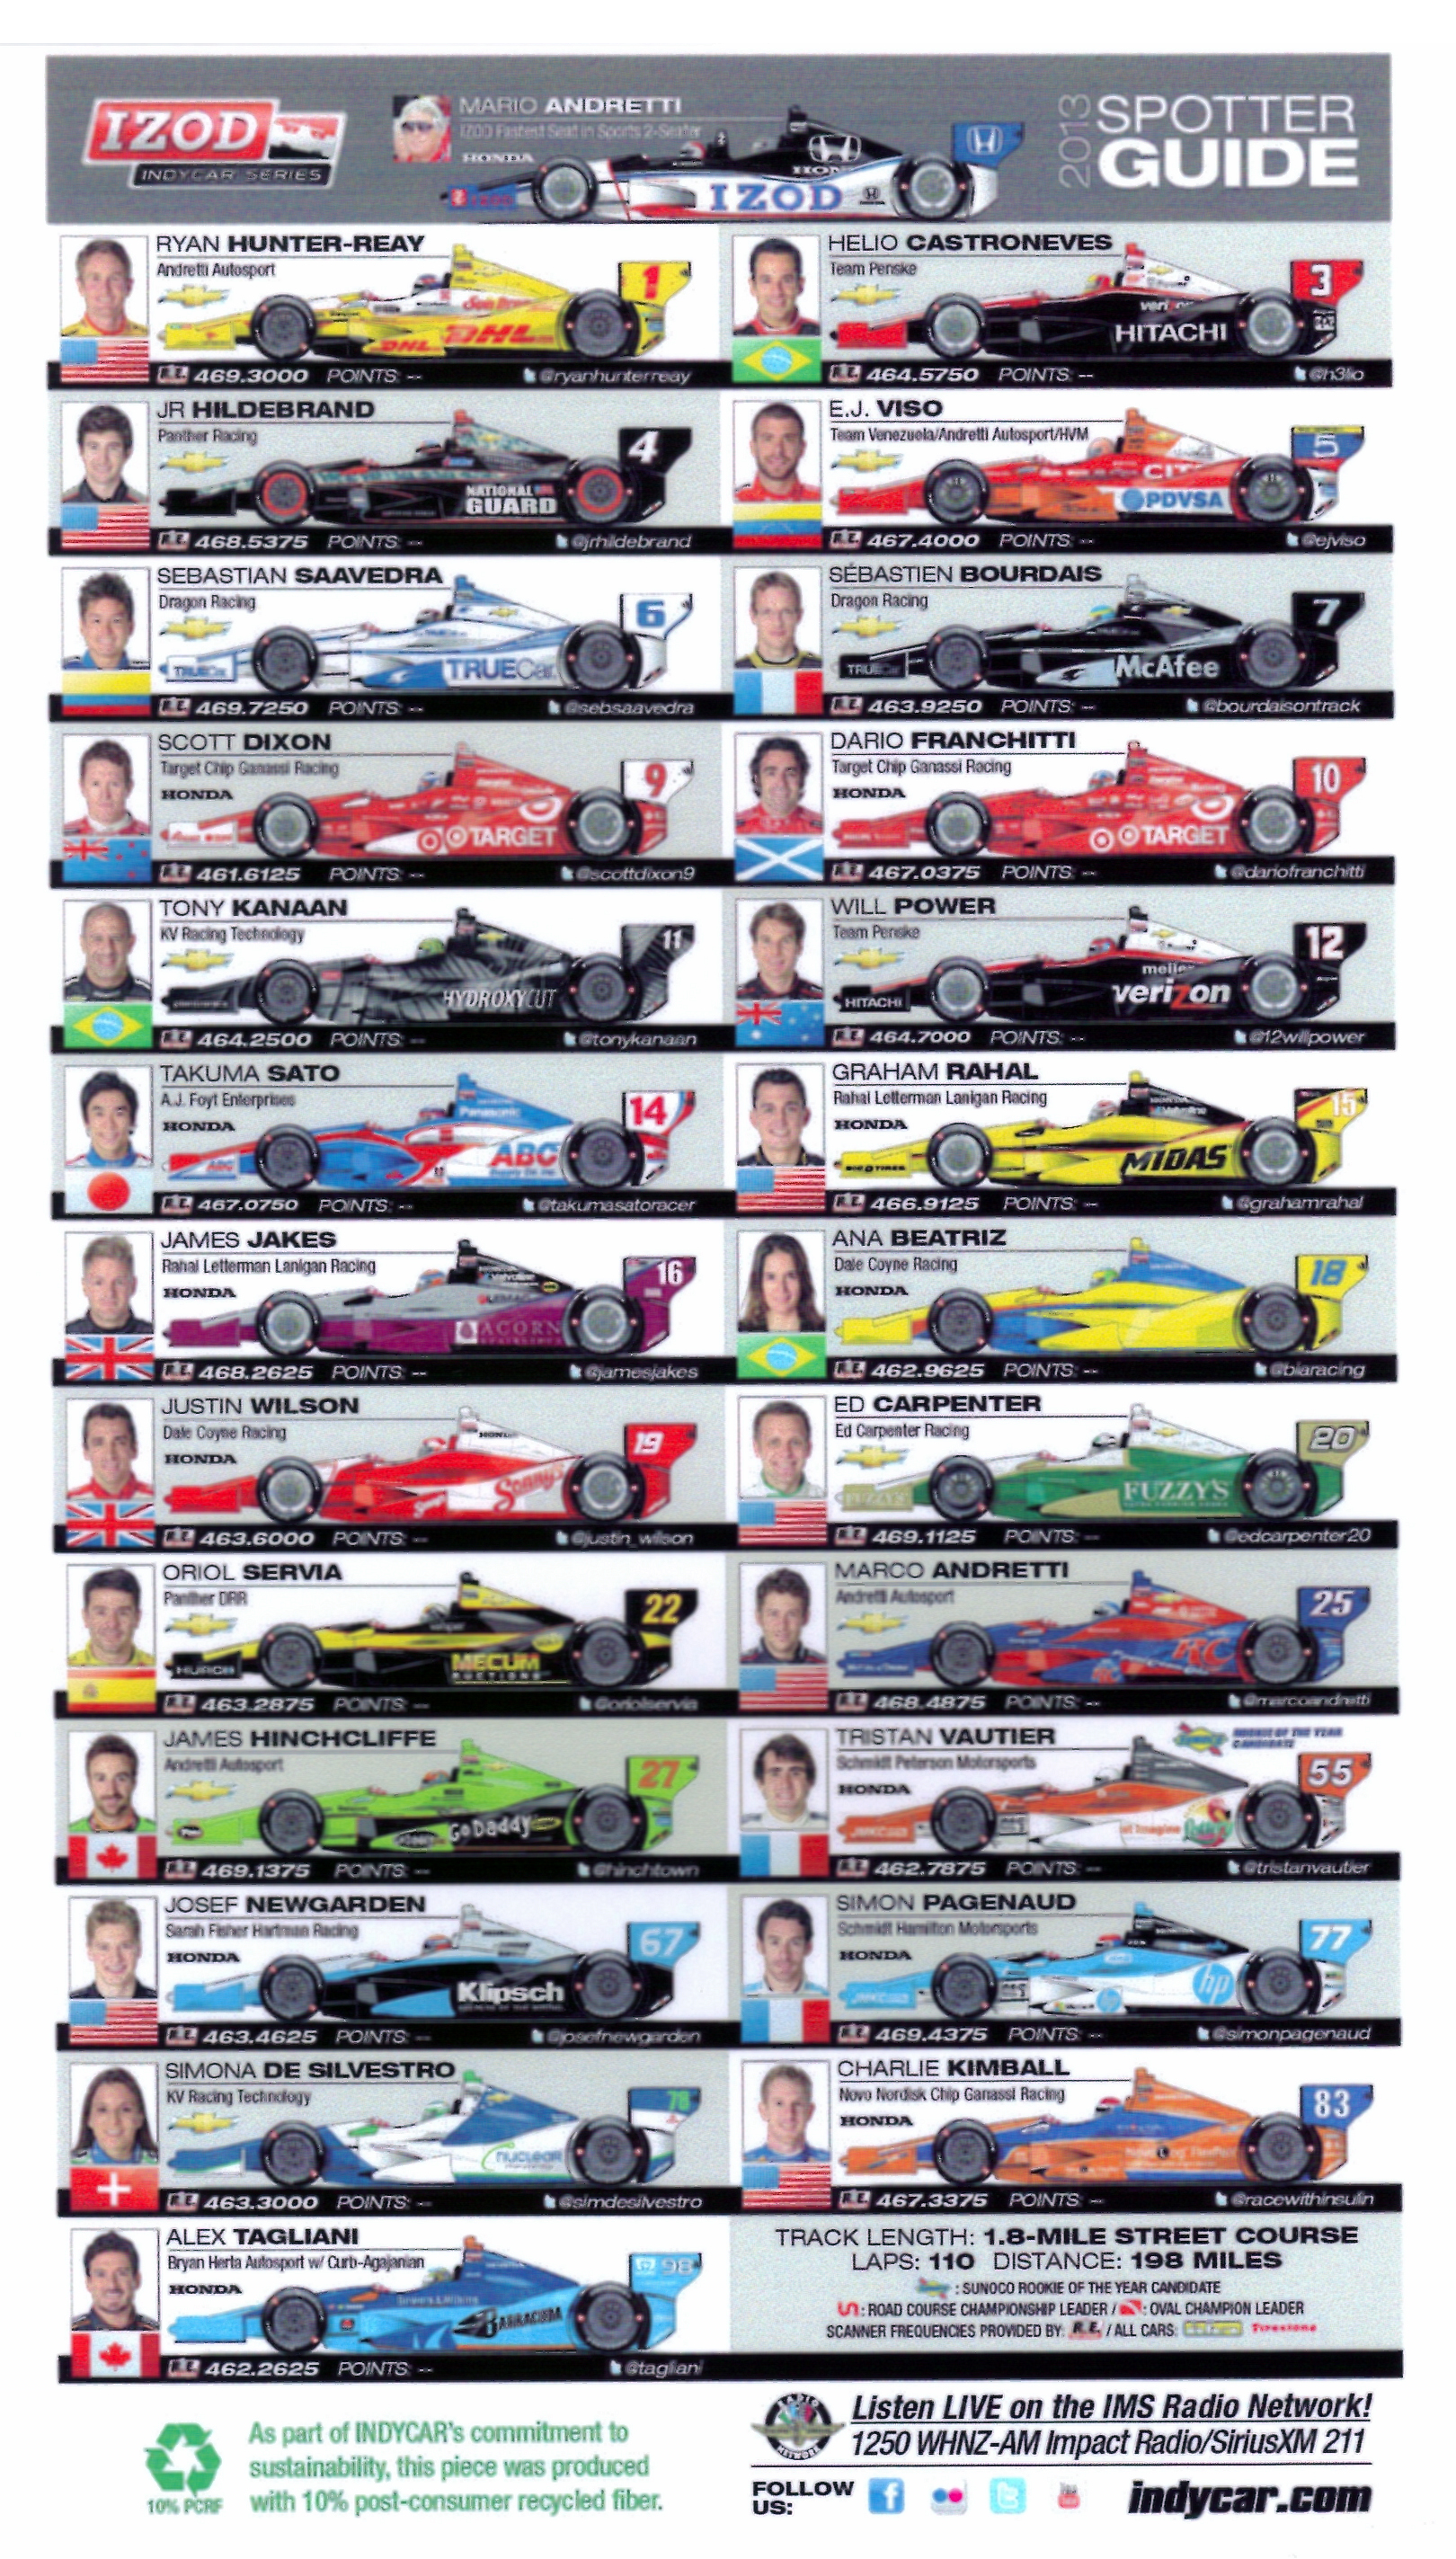 Indycar Entry List And Spotters Guide For The Honda Grand